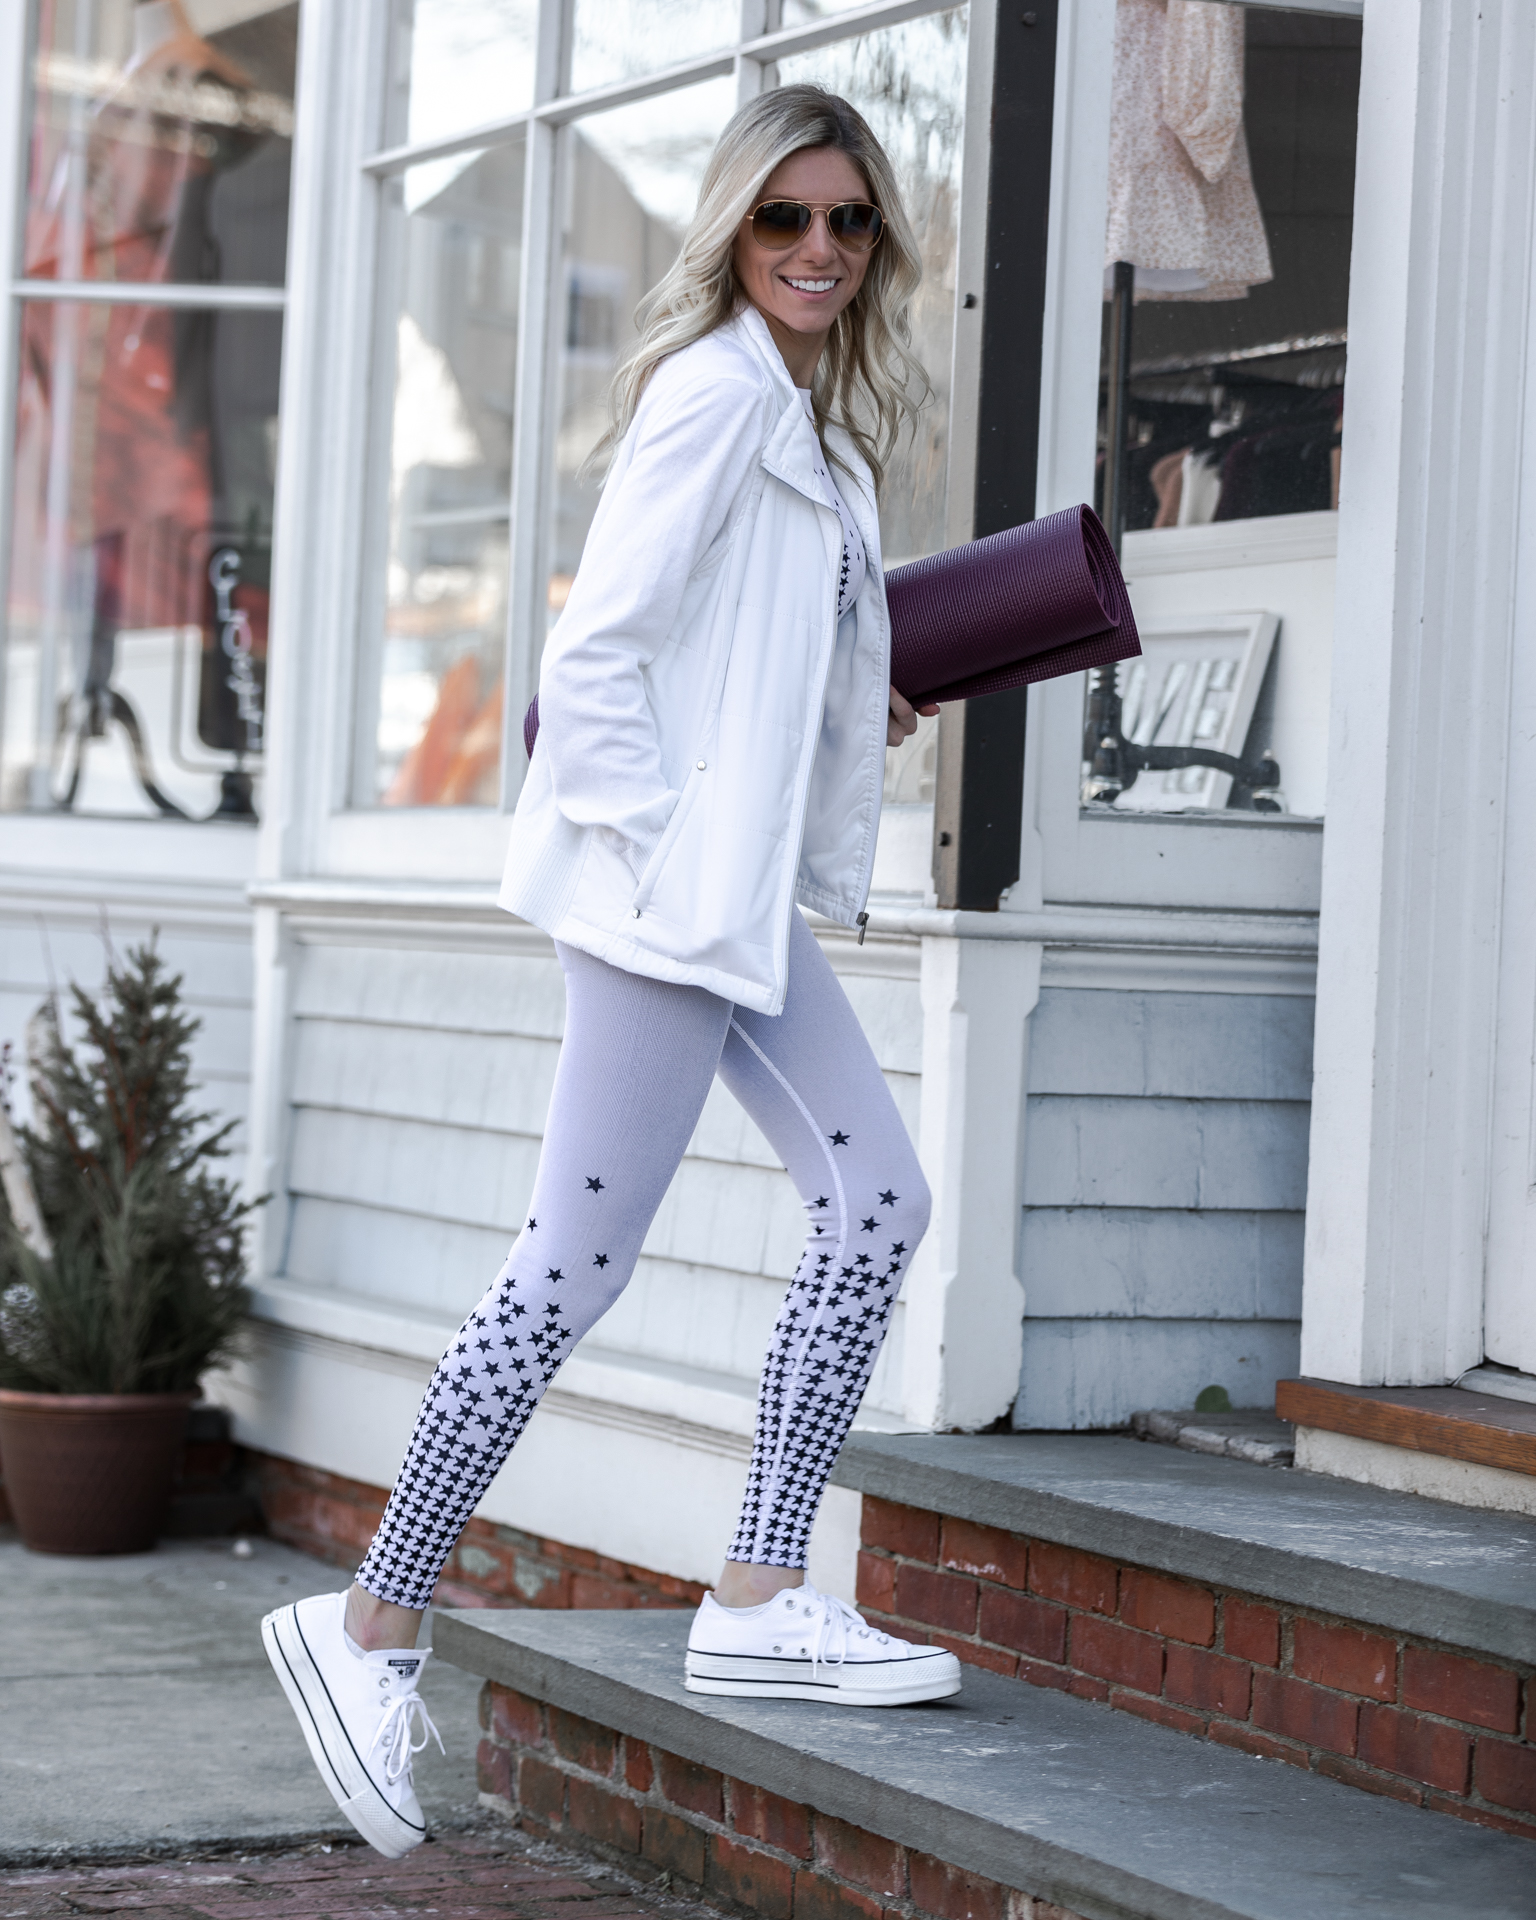 fabletics-althetic-wear-star-detail-leggings-the-glamorous-gal